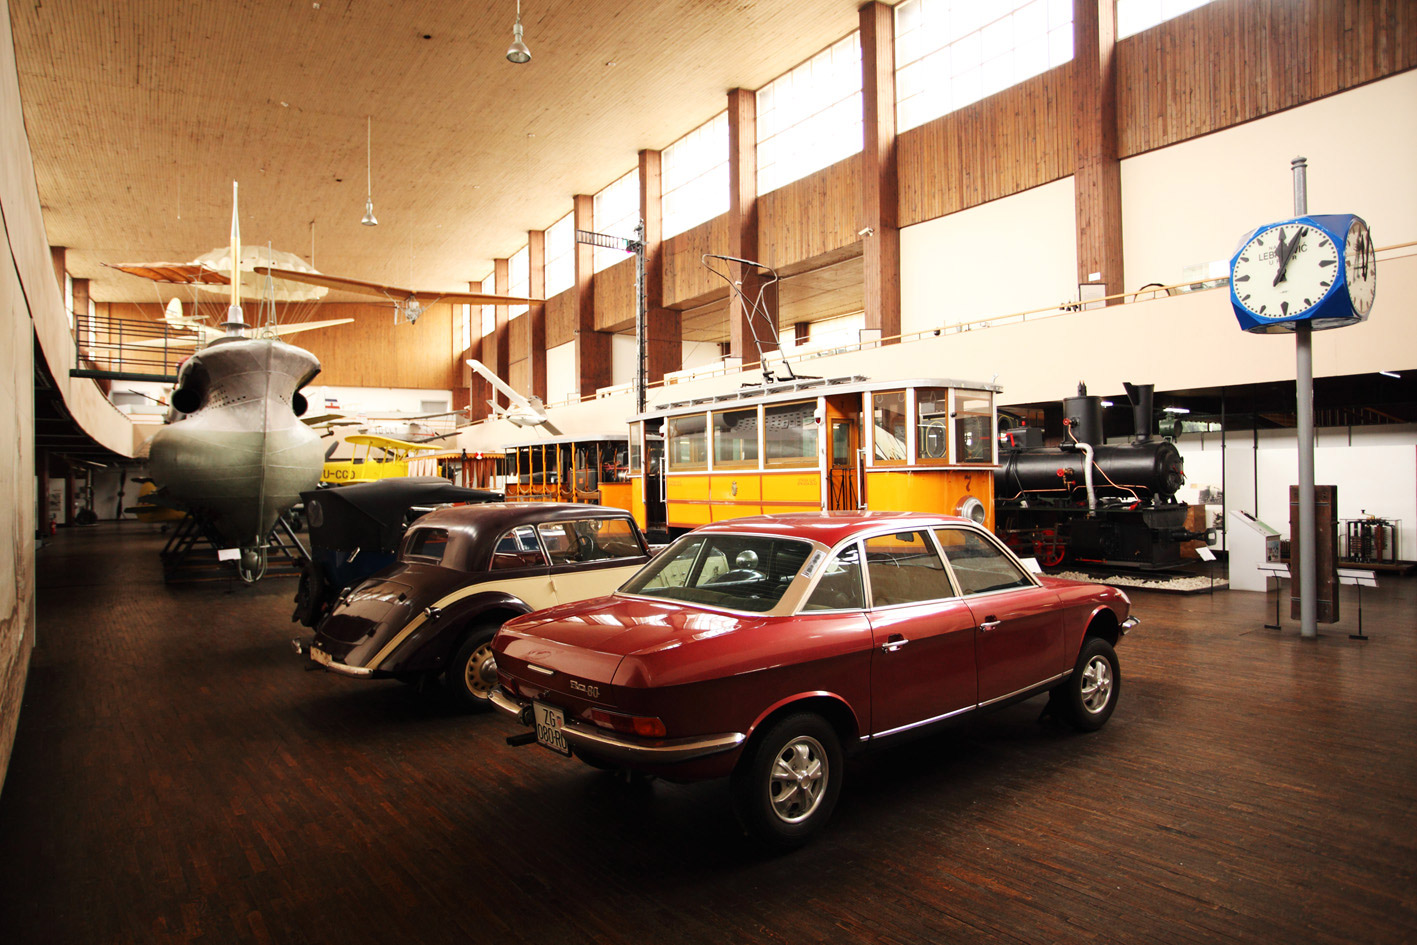 The Technical Museum